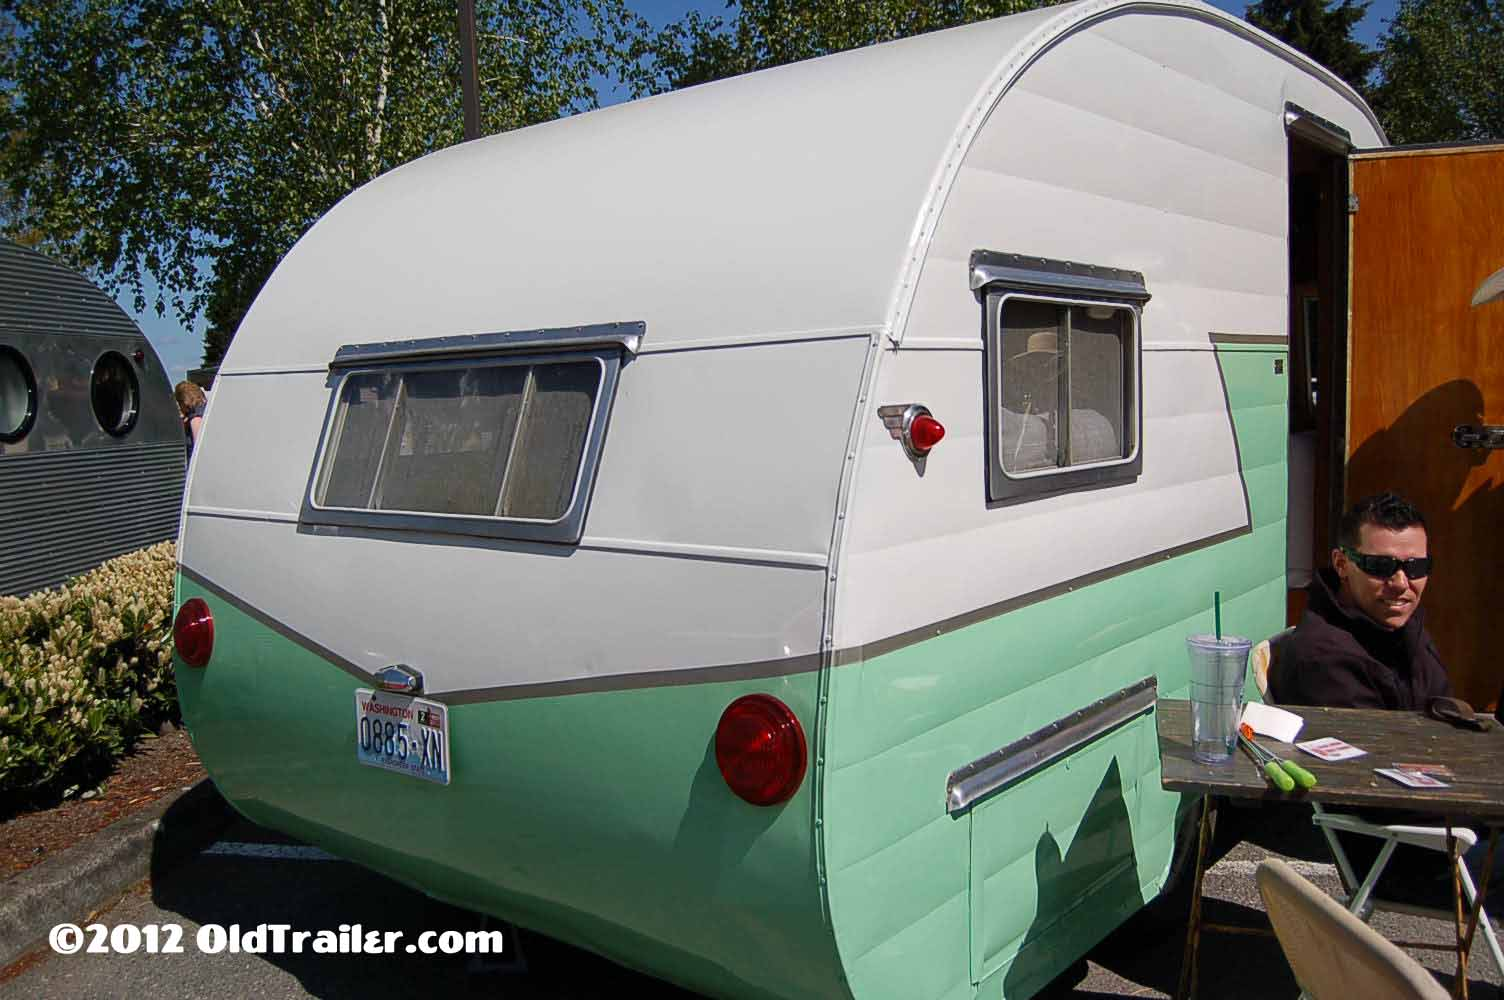 Vintage Shasta Trailer Pictures and history, from OldTrailer com